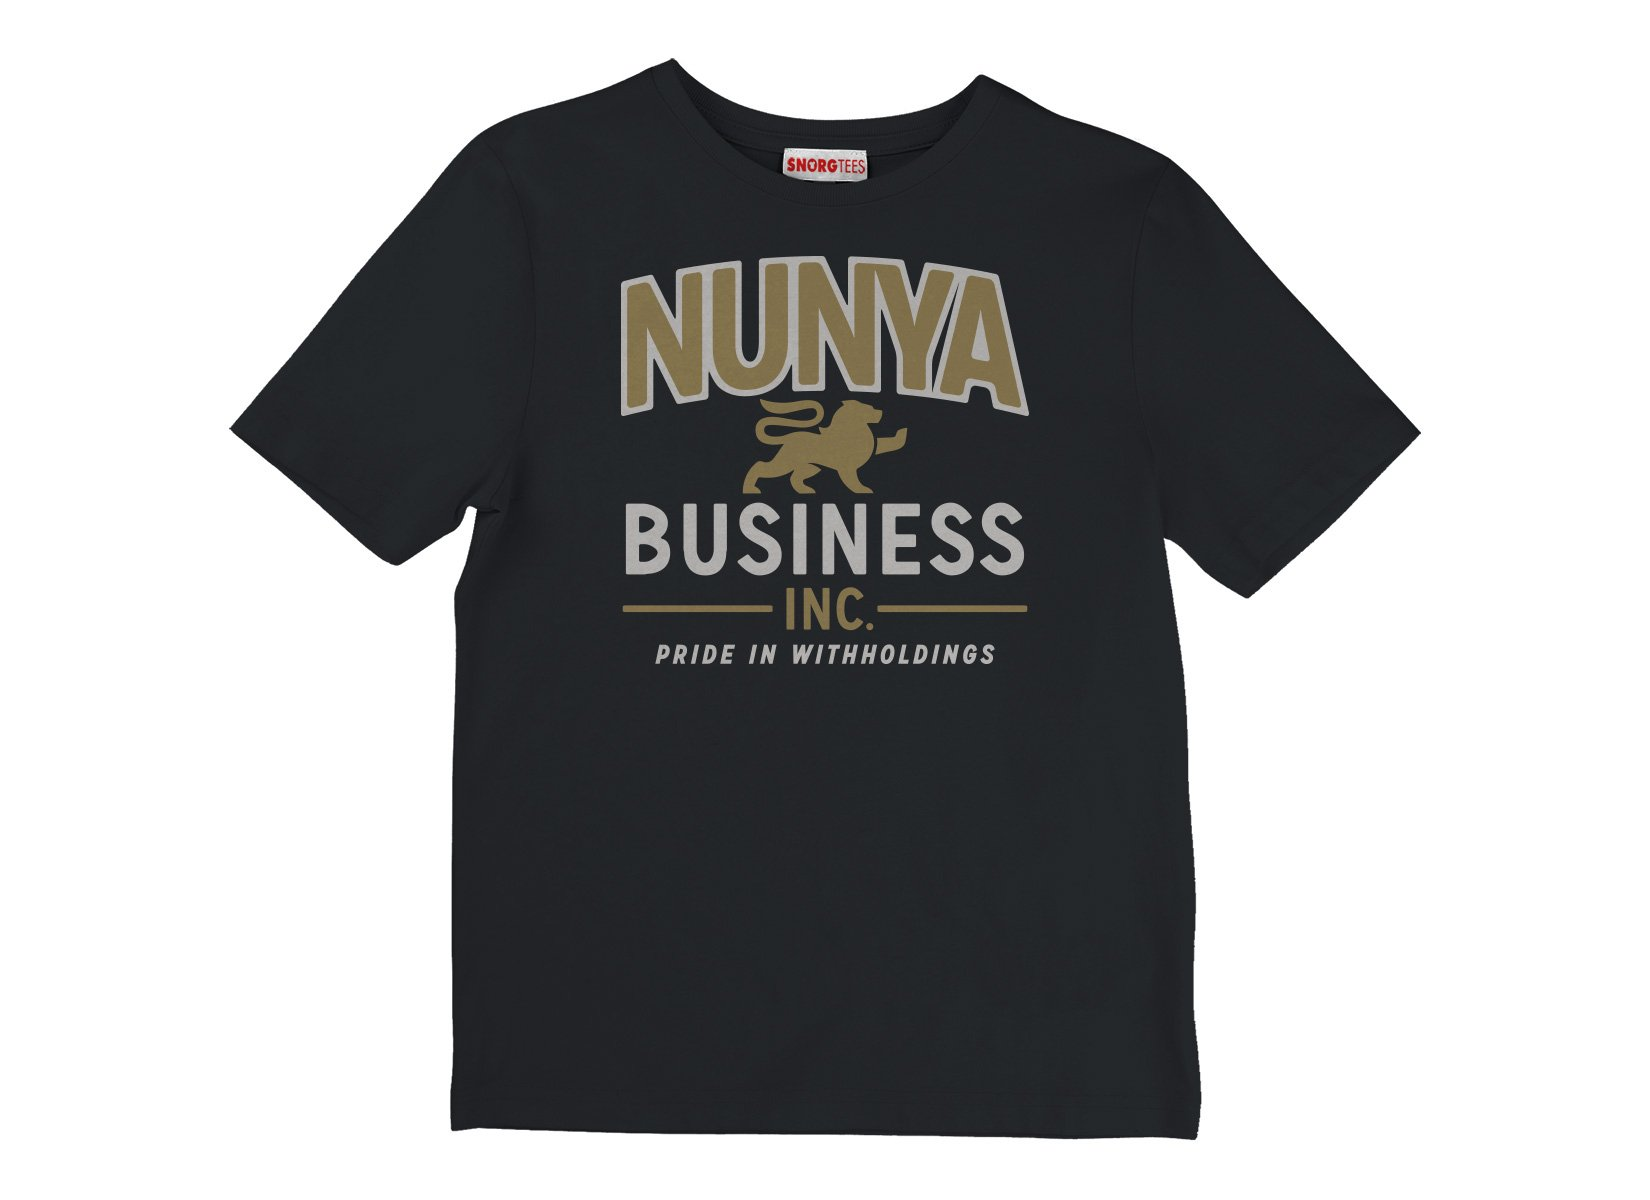 Nunya Business on Kids T-Shirt